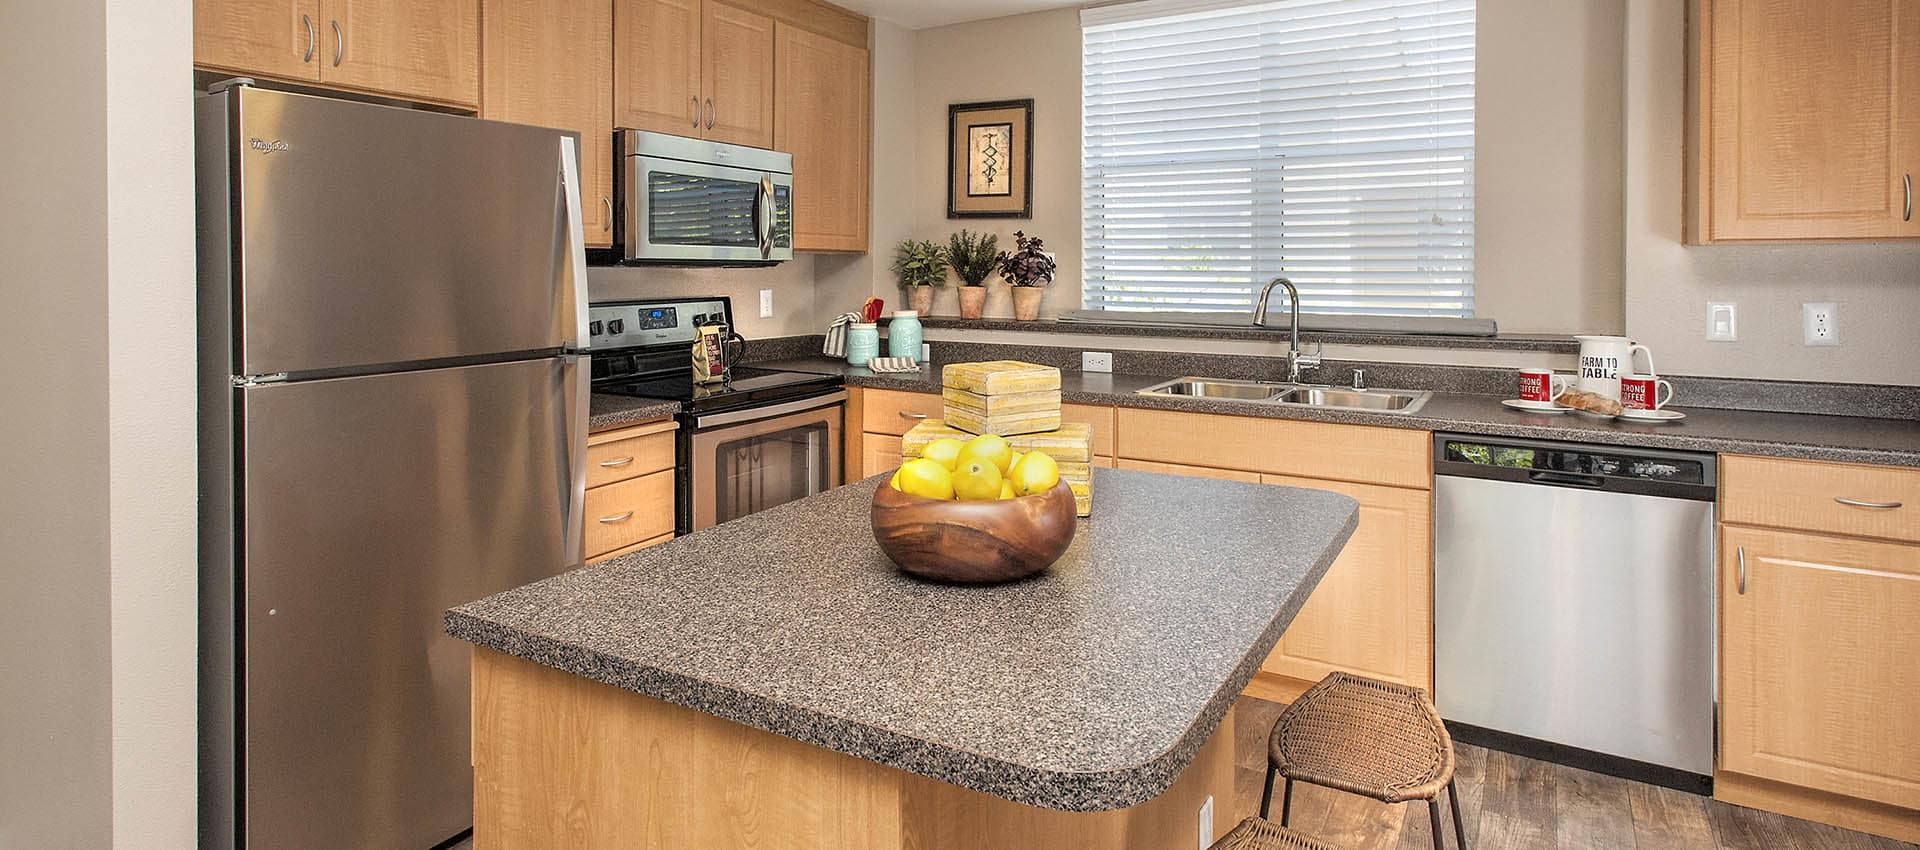 Island Counter In Kitchen at Azure Apartment Homes in Petaluma, California